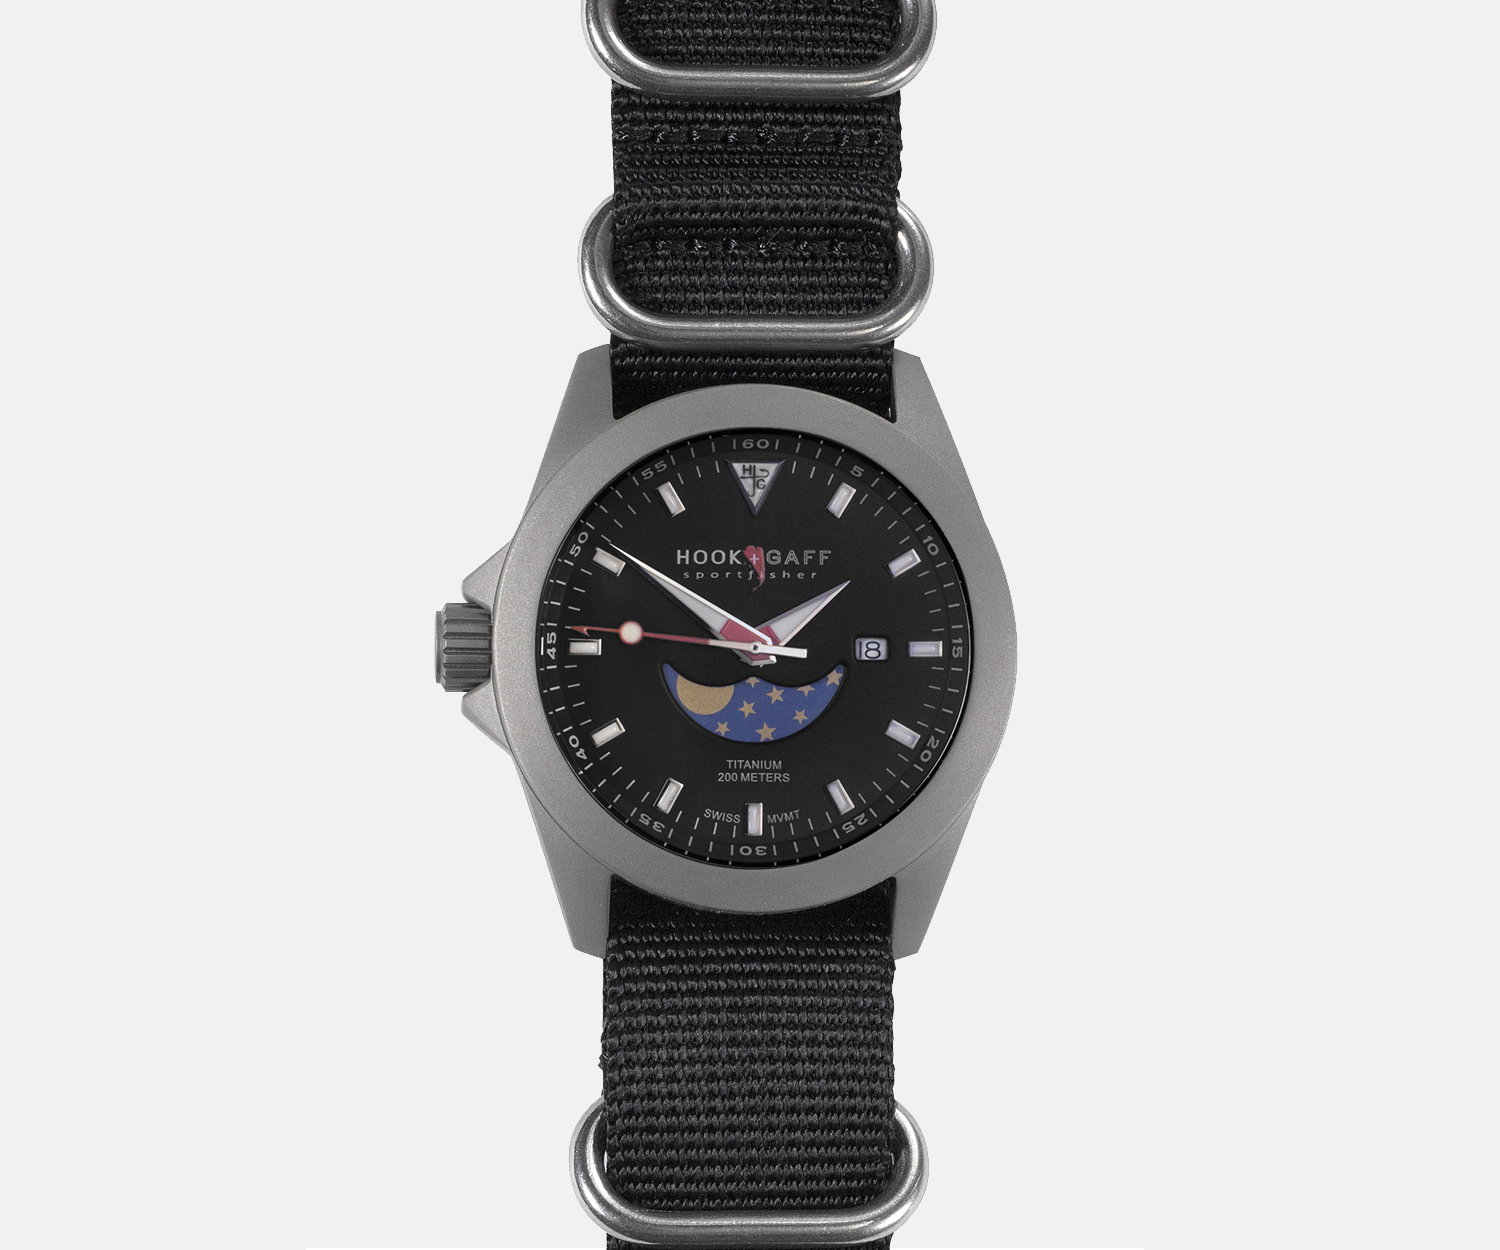 HOOK AND GAFF SPORTFISHER II MP BLACK MOONPHASE DIAL